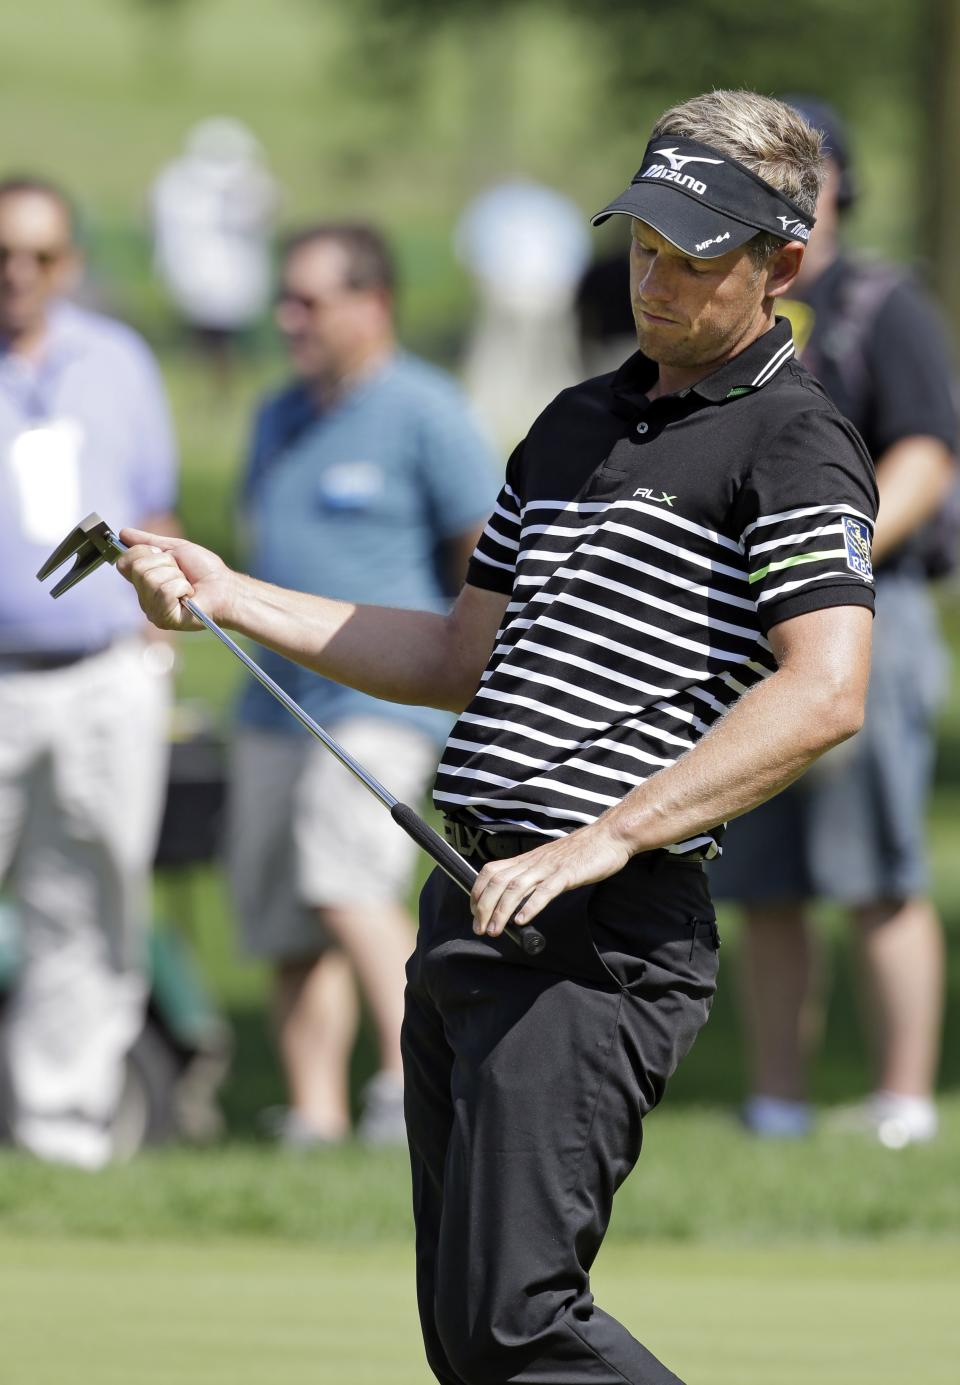 Luke Donald, from England, reacts after missing a short putt for birdie on the 10th hole during the first round of the Bridgestone Invitational golf tournament Thursday, Aug. 1, 2013 at Firestone Country Club in Akron, Ohio. (AP Photo/Mark Duncan)